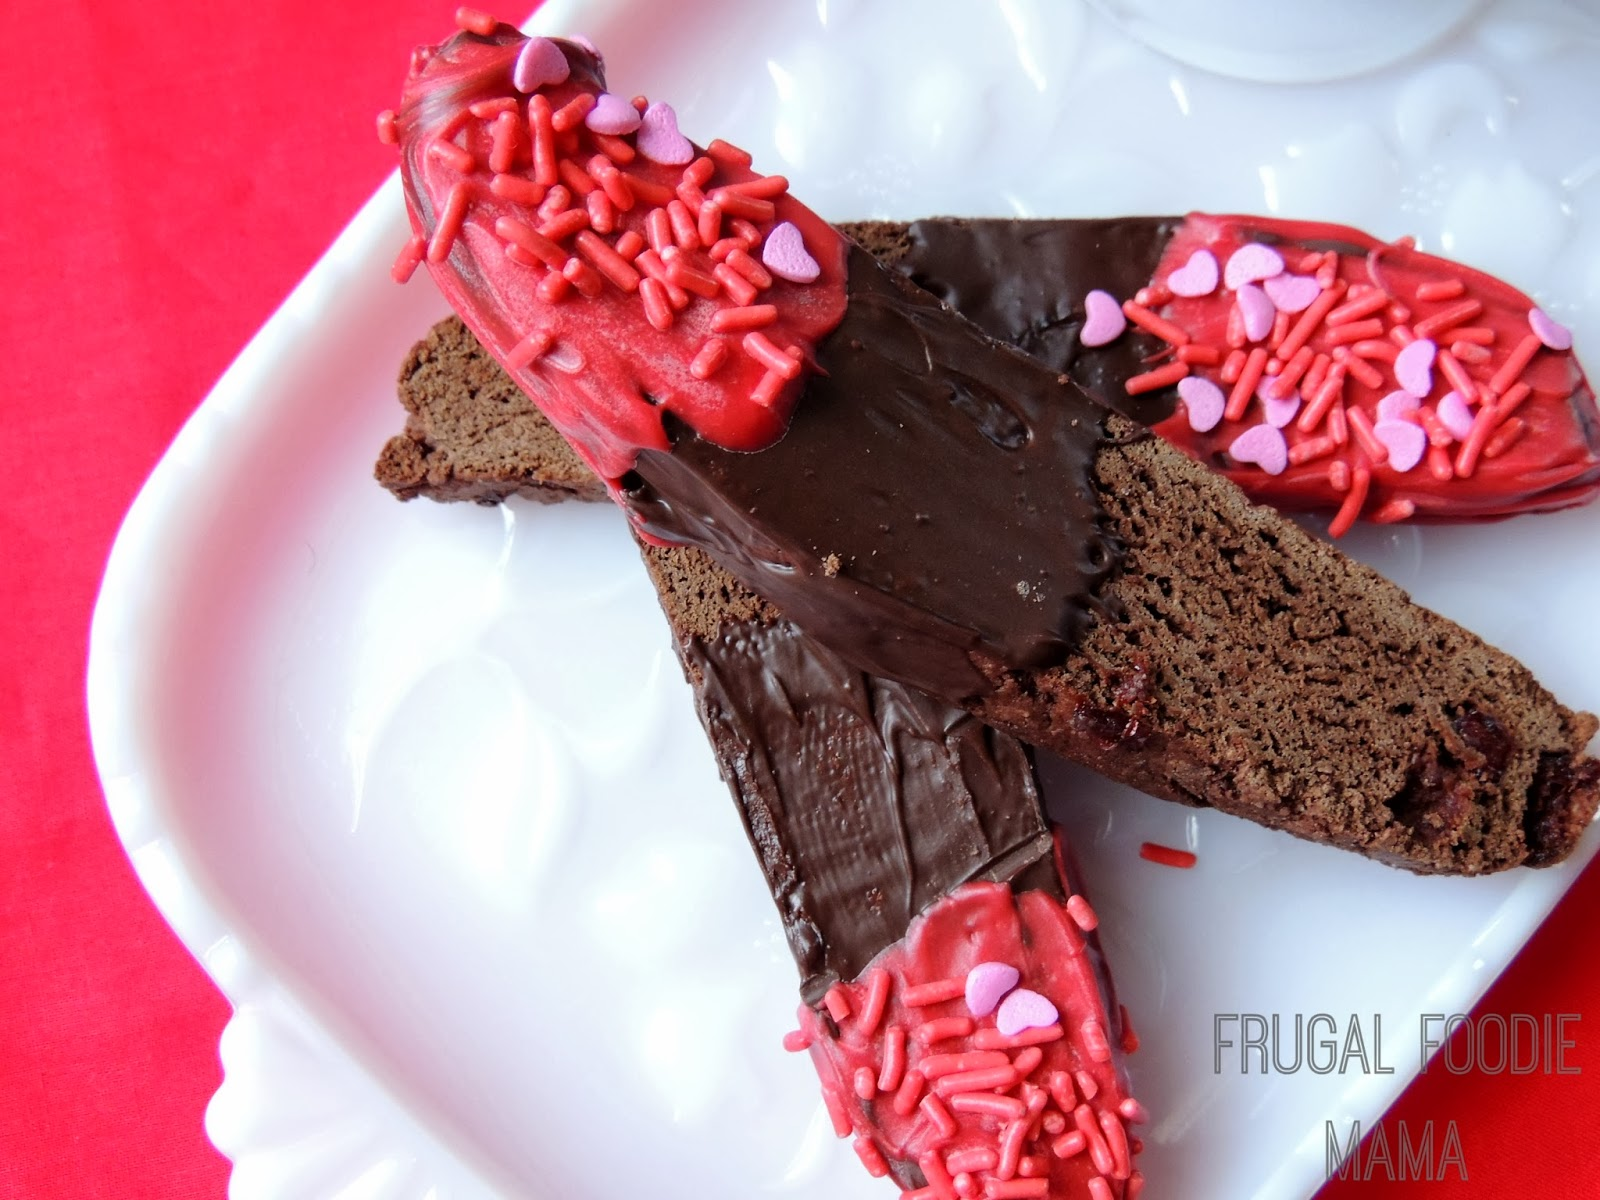 Frugal Foodie Mama: Double Chocolate Cherry Biscotti